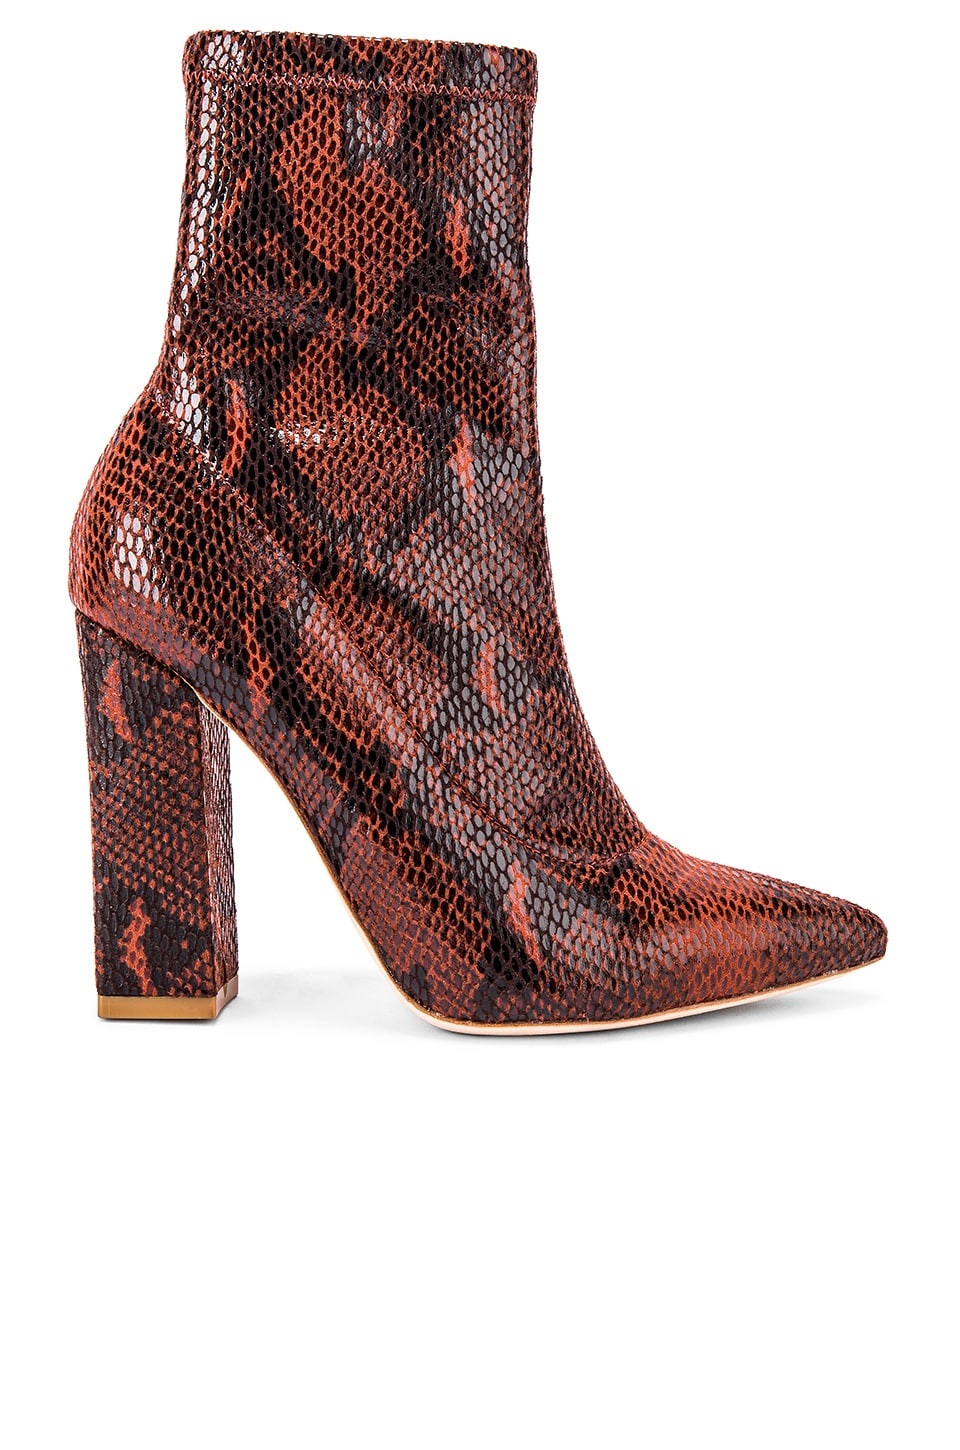 RAYE Fang Bootie in Brown Snake